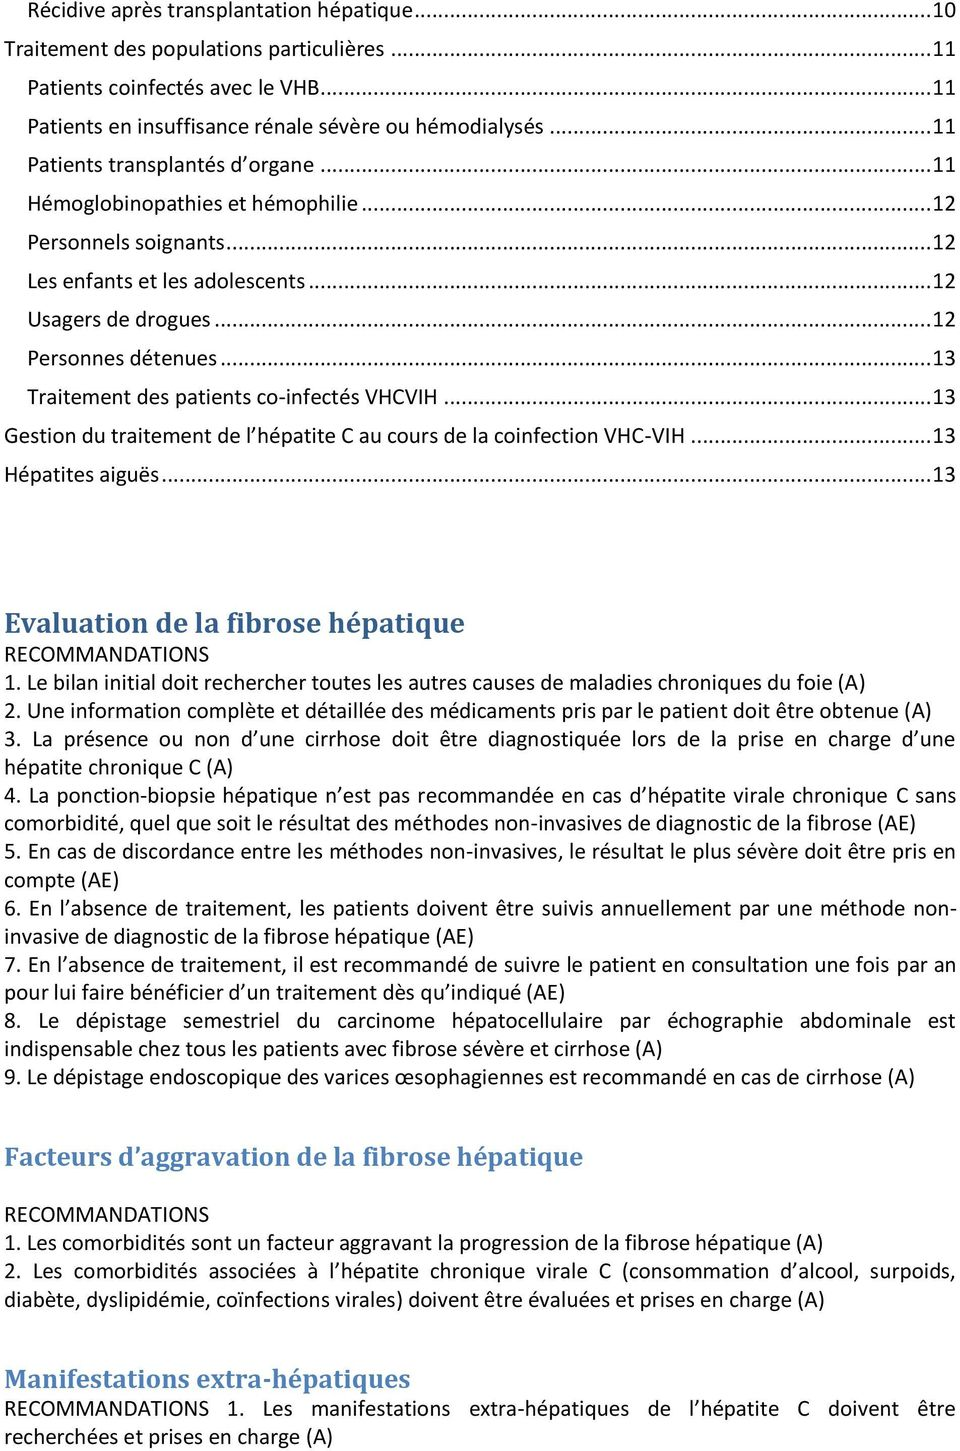 .. 13 Traitement des patients co-infectés VHCVIH... 13 Gestion du traitement de l hépatite C au cours de la coinfection VHC-VIH... 13 Hépatites aiguës... 13 Evaluation de la fibrose hépatique 1.